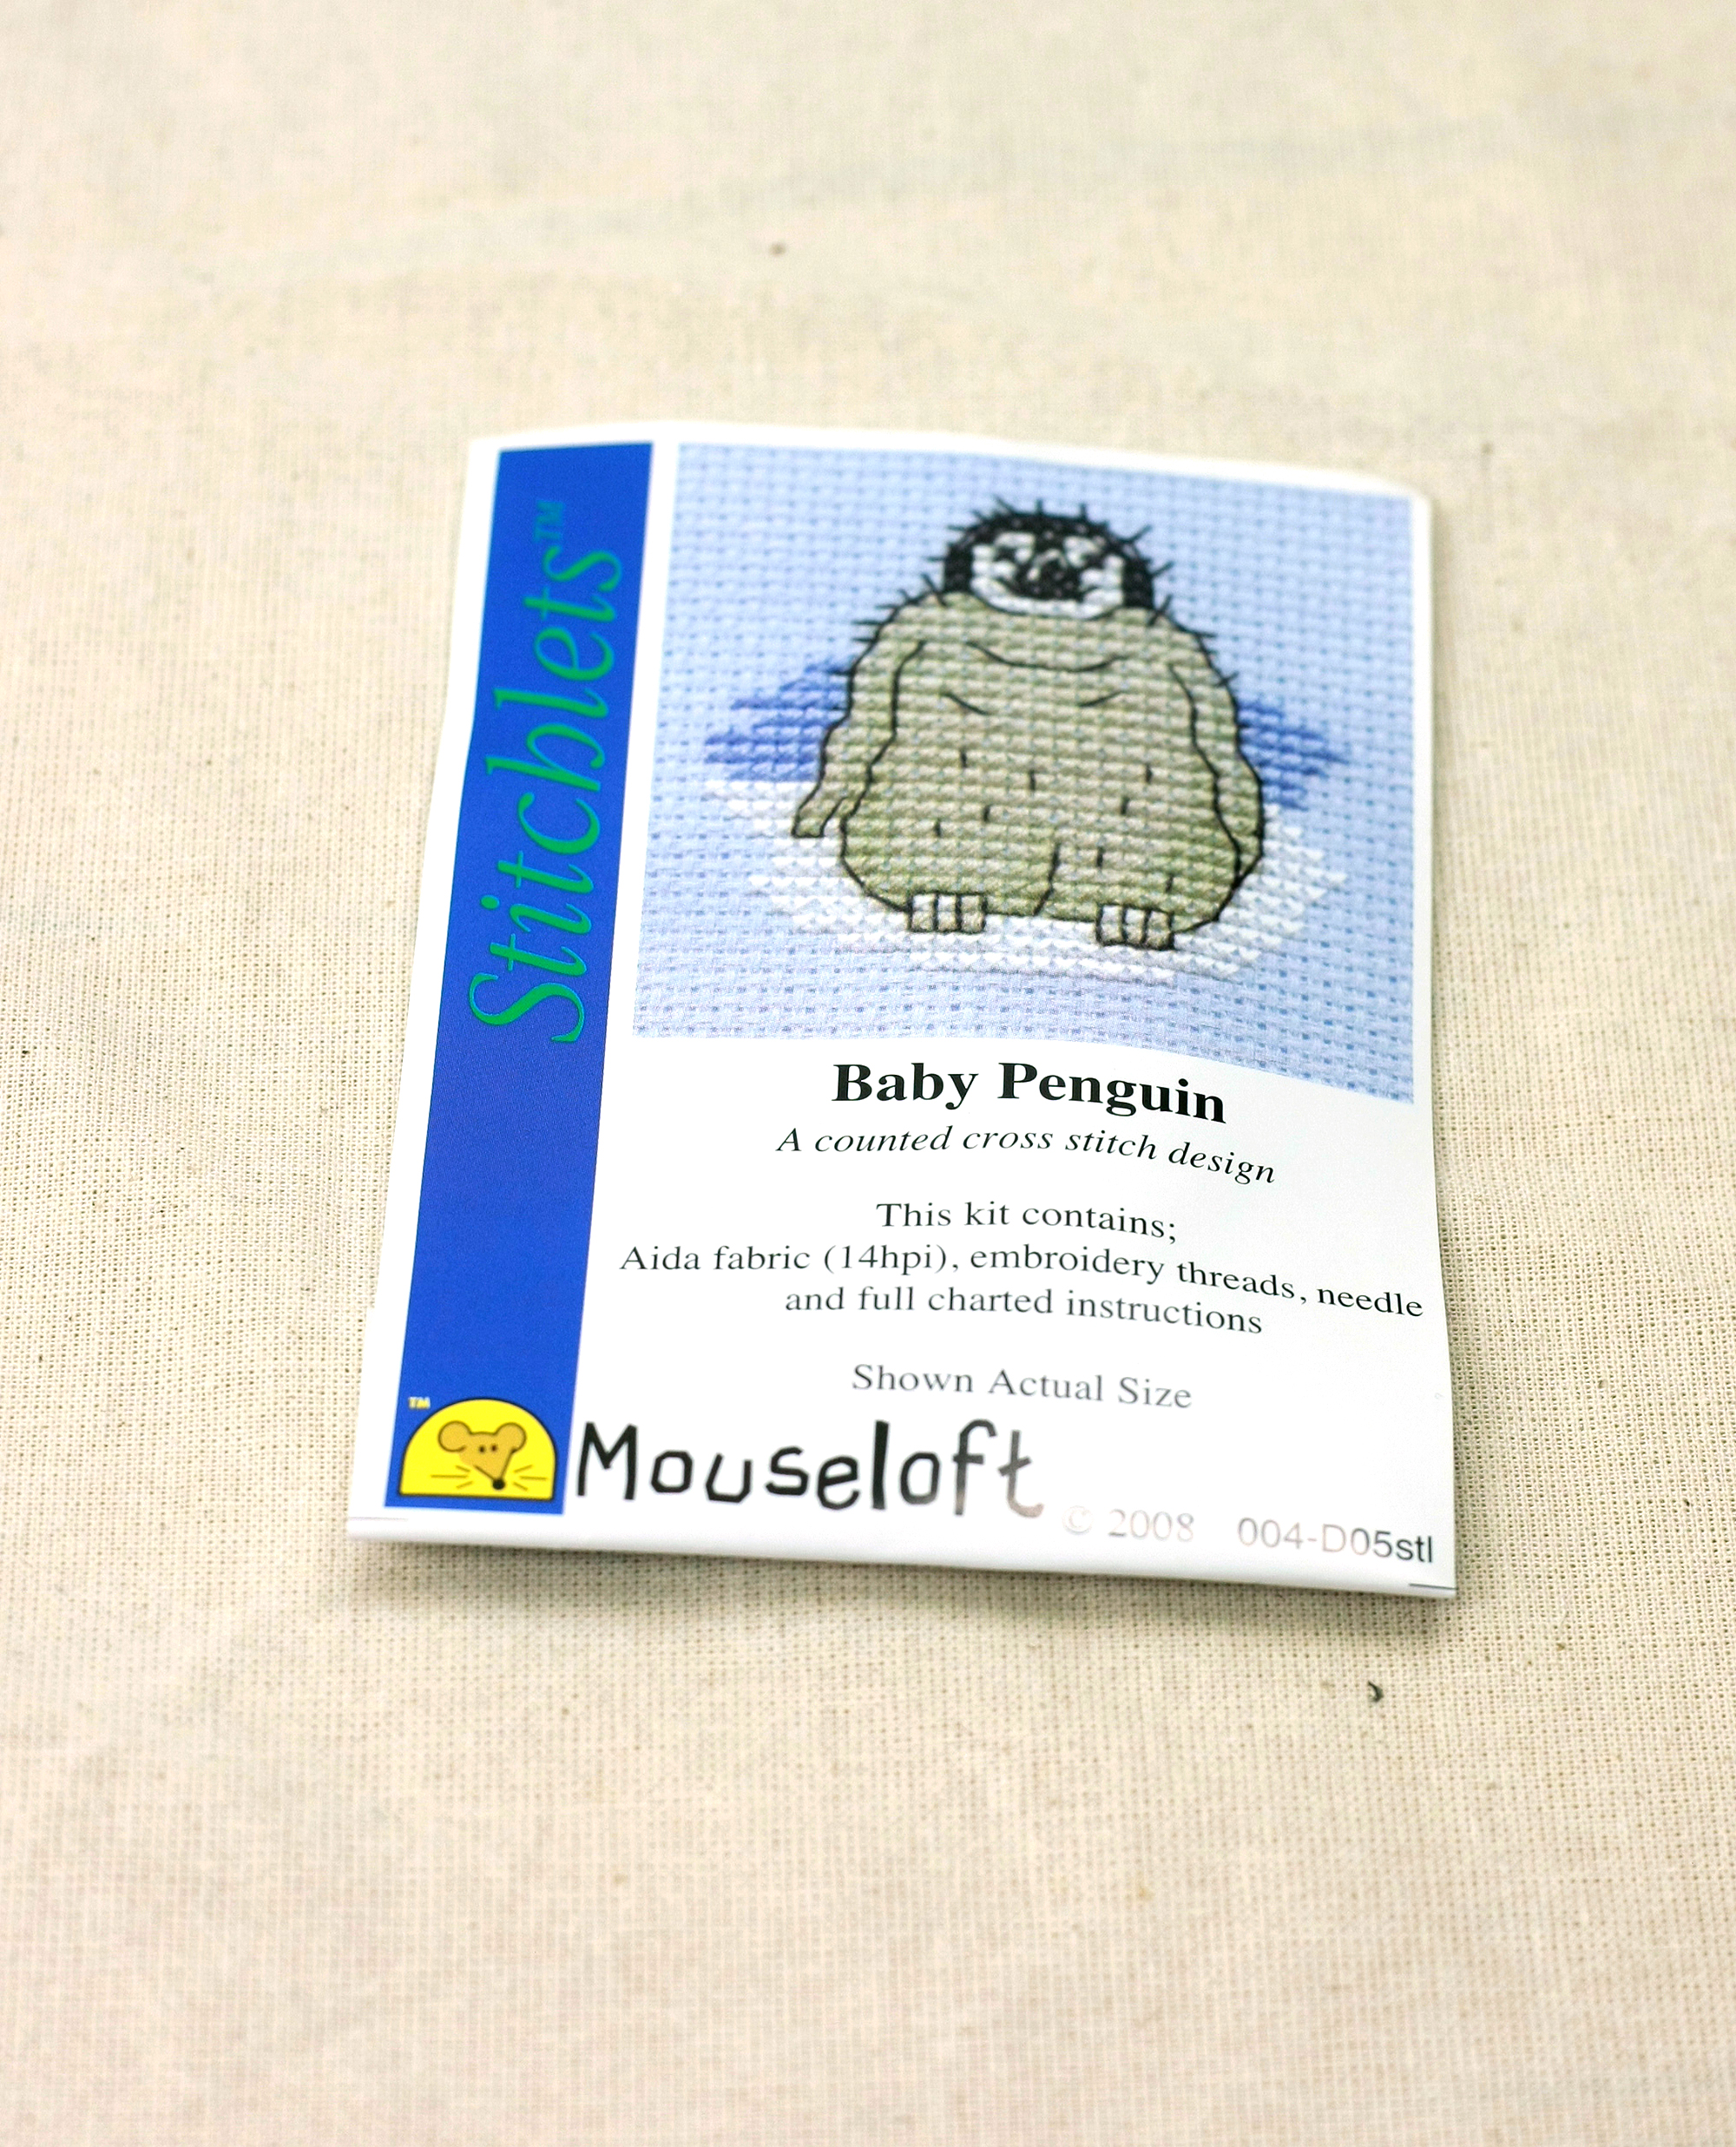 Baby Penguin Stitchlets X Stitch Kit by Mouseloft